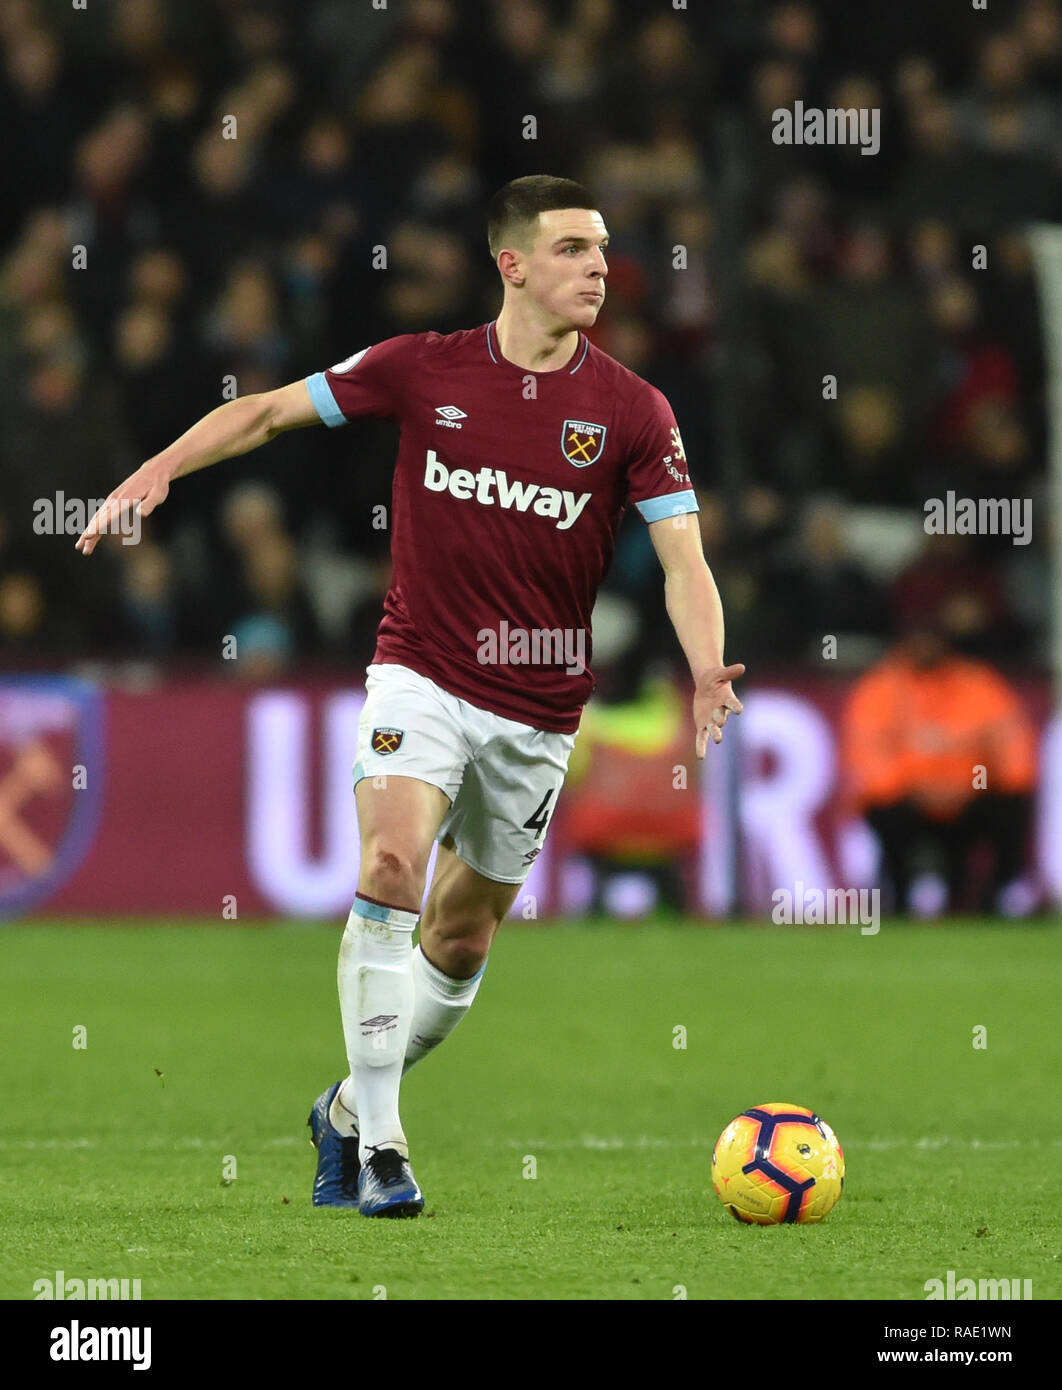 West Ham Shirt High Resolution Stock Photography And Images Alamy